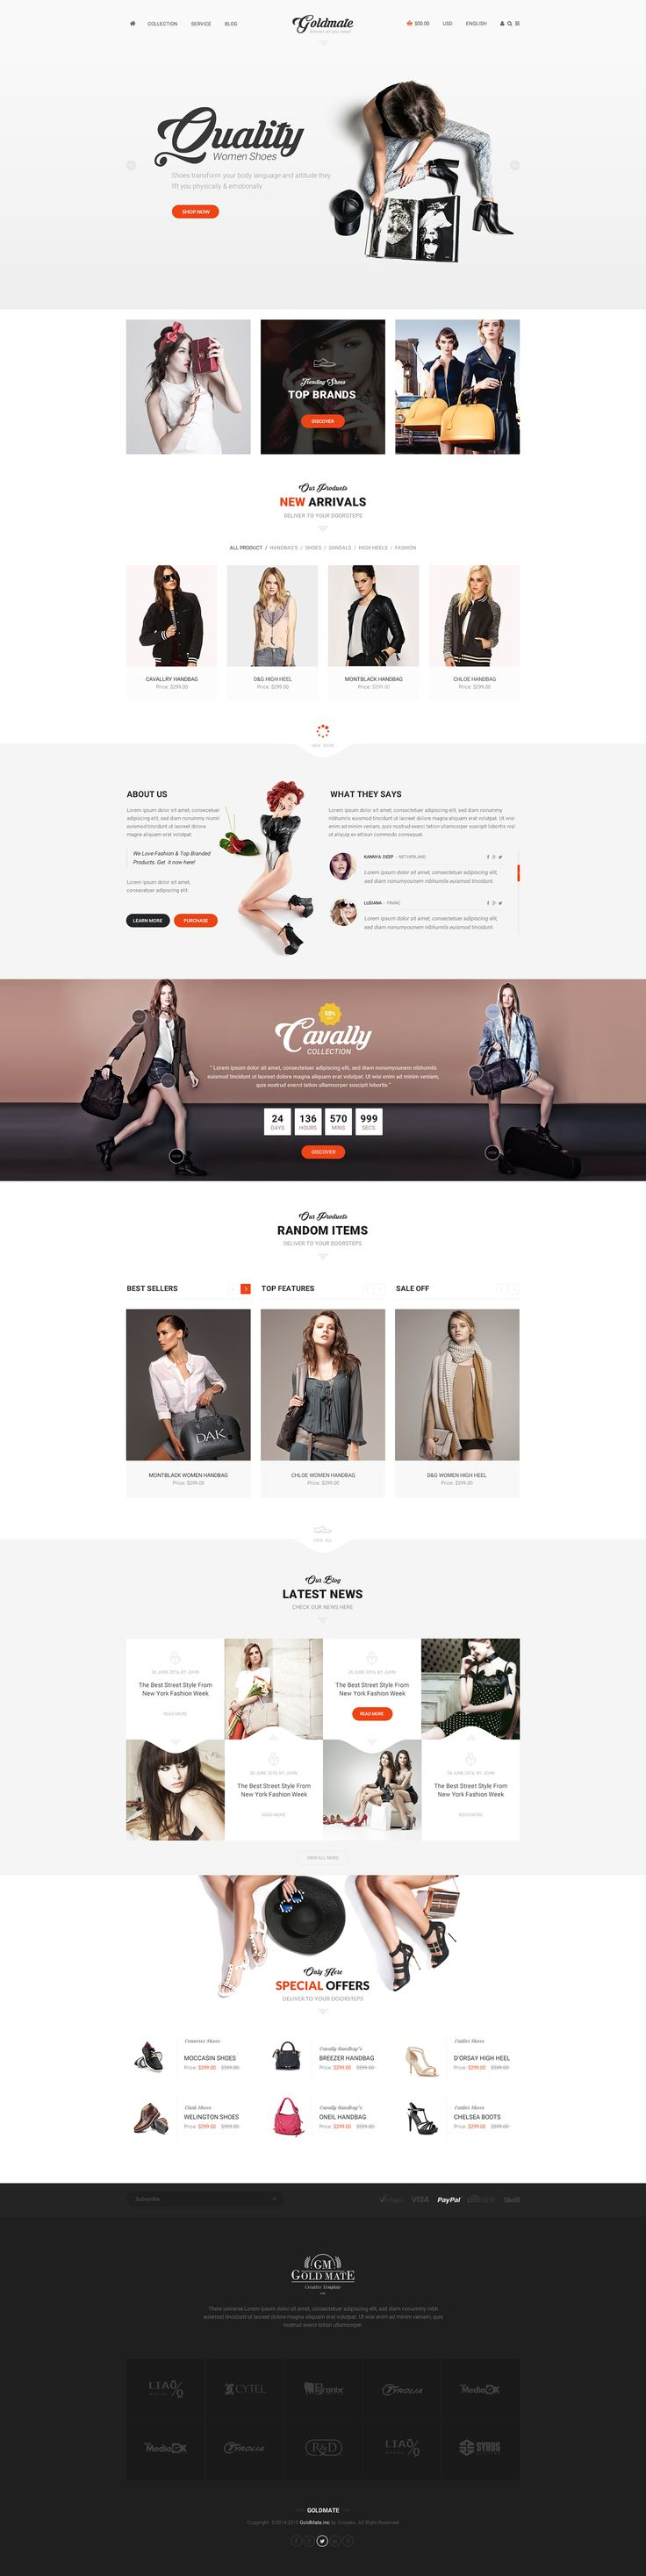 The 3 Advertising Phases With Zero Dollars Invested To Make My 1st Million In Sales In 5 Months Fashion Web Design Fashion Website Design Ecommerce Website Design